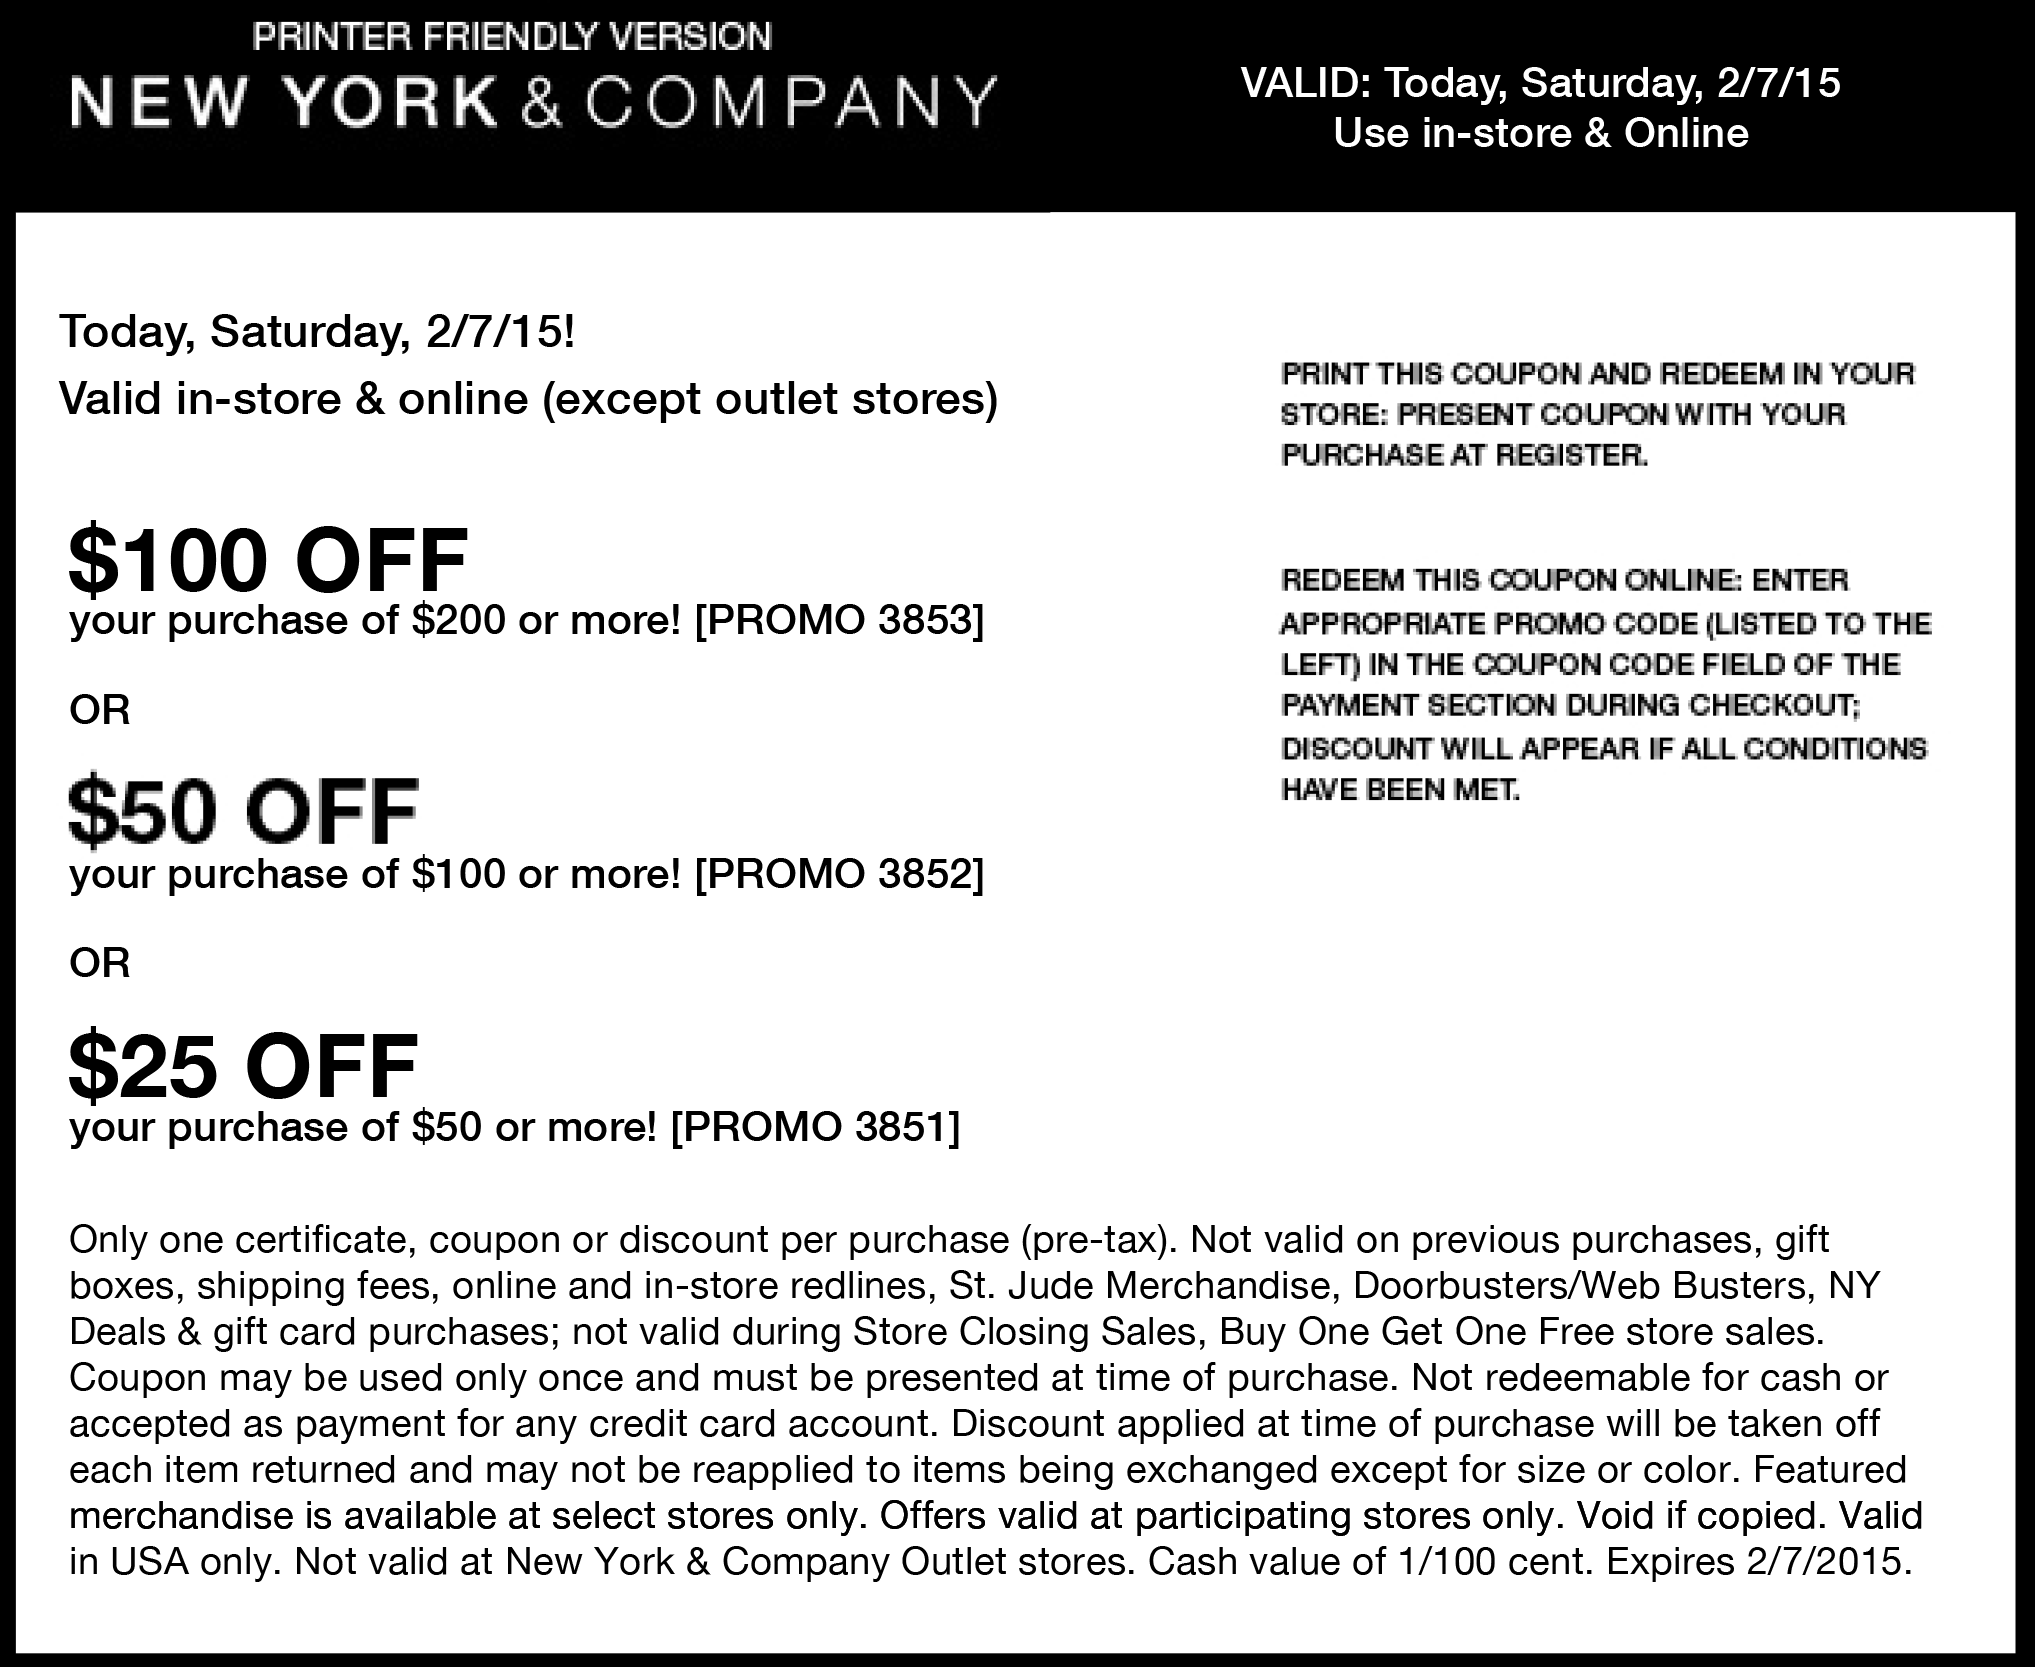 New York & Company Coupon February 2018 $25 off $50 & more today at New York & Company, or online via promo code 3851